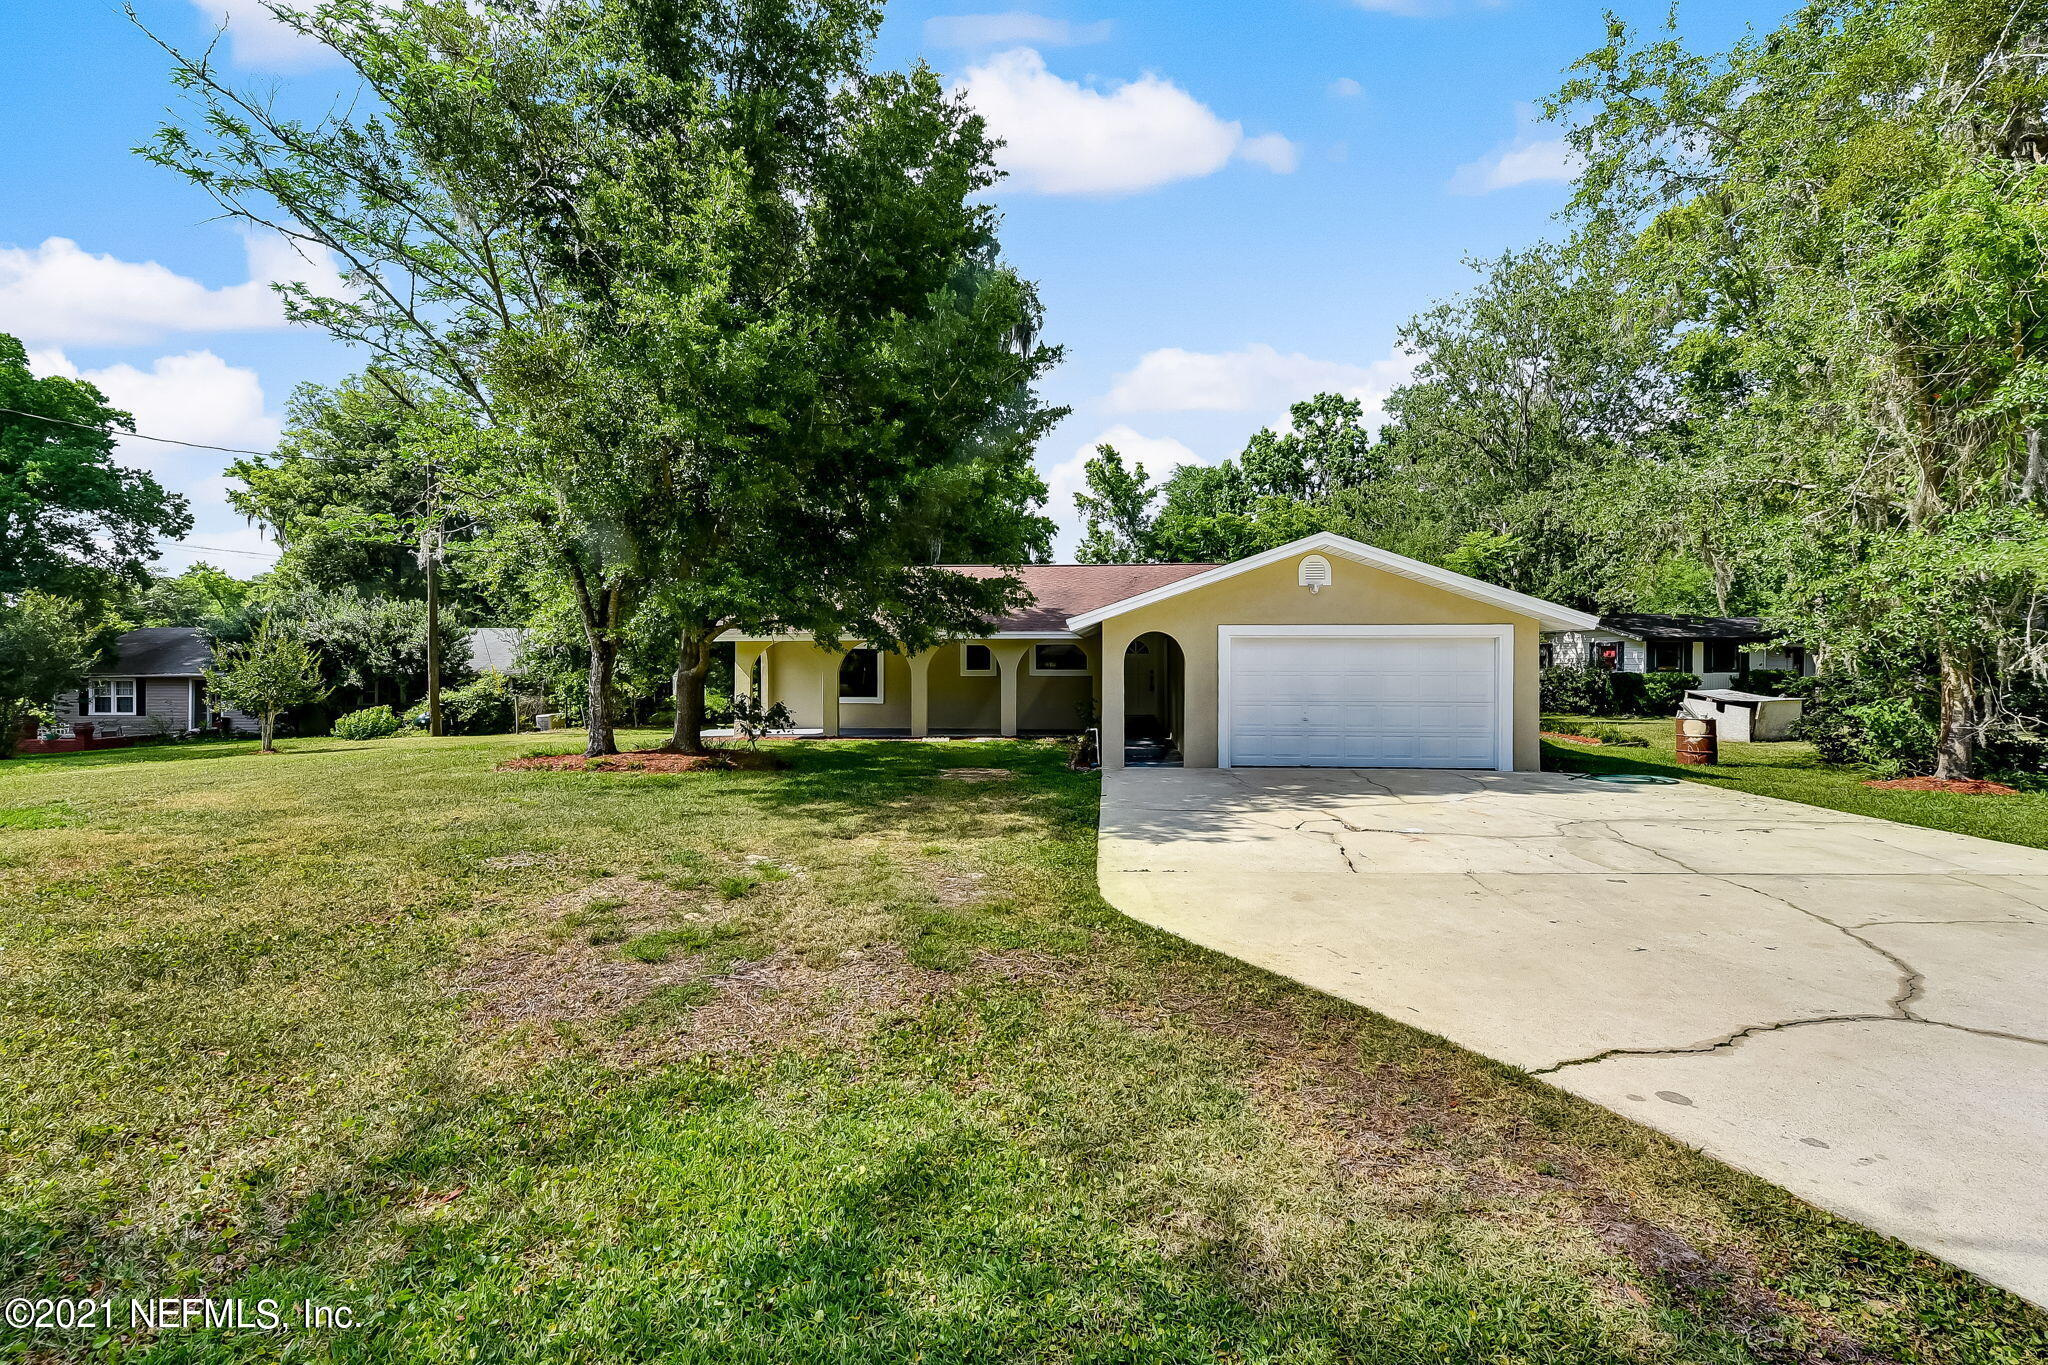 4216 SCENIC, MIDDLEBURG, FLORIDA 32068, 3 Bedrooms Bedrooms, ,2 BathroomsBathrooms,Residential,For sale,SCENIC,1112776